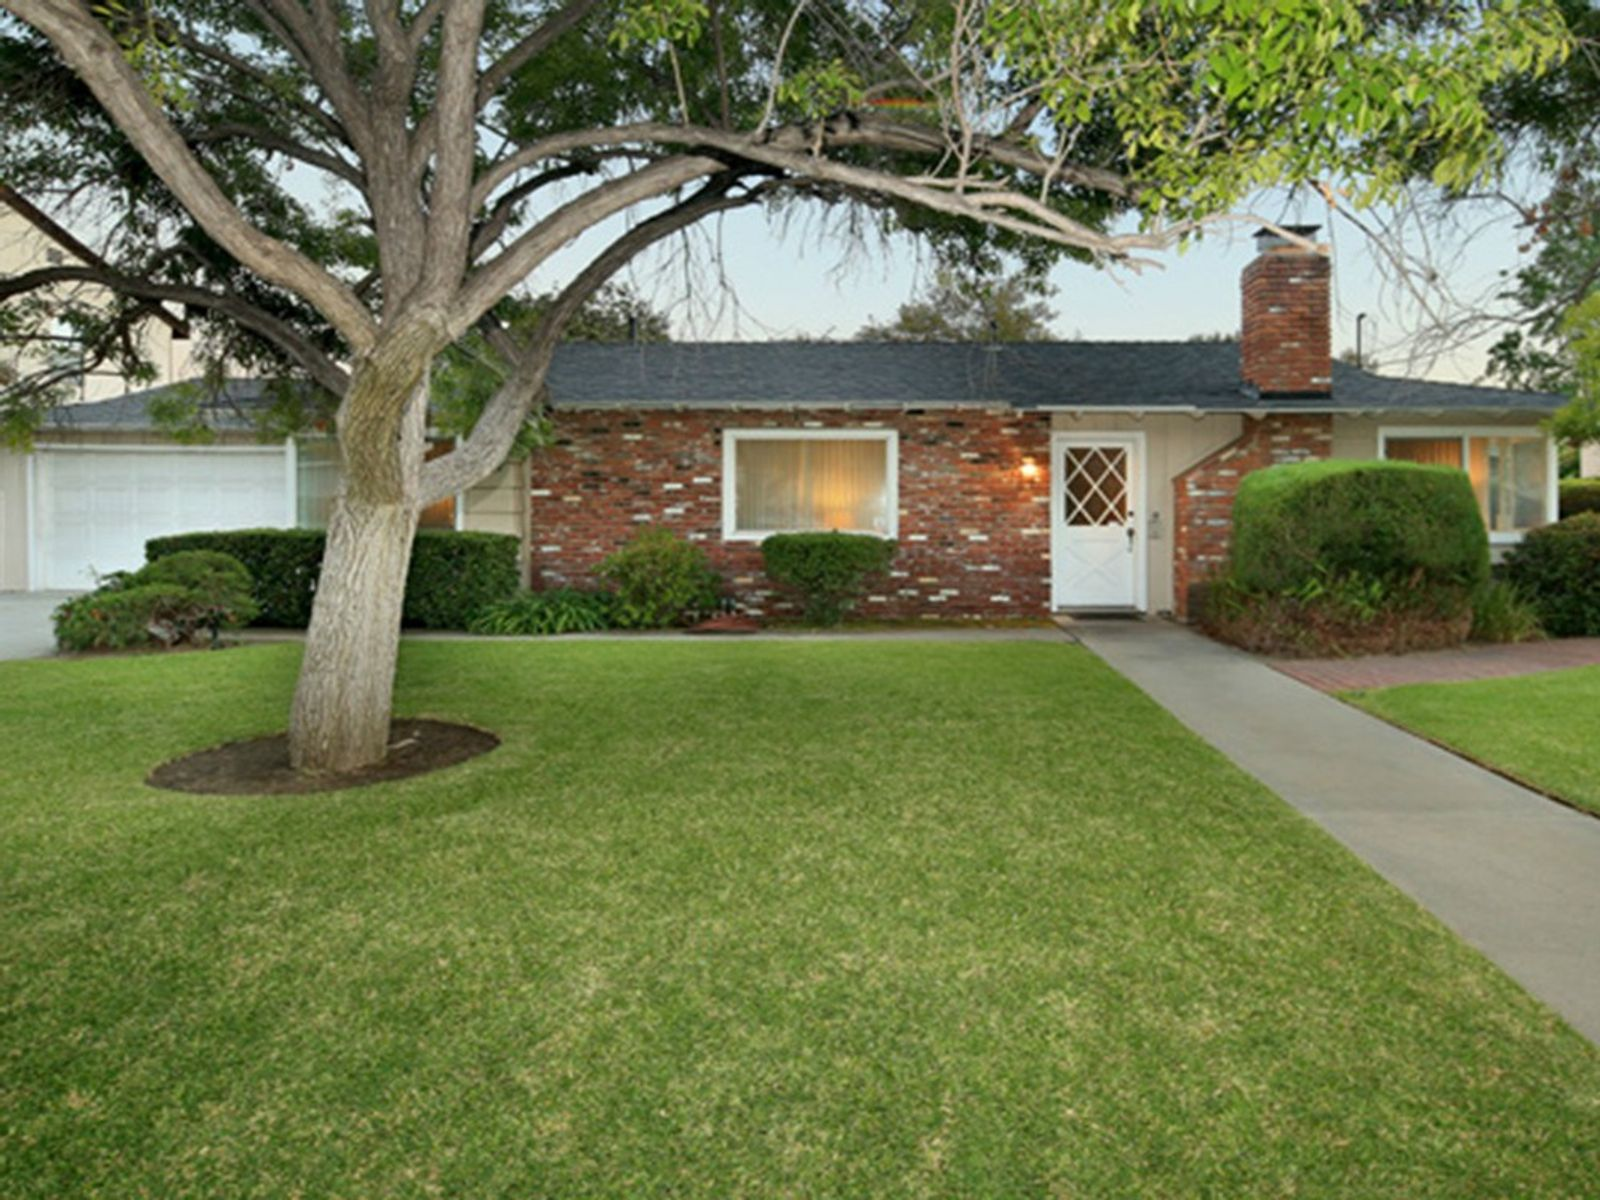 1210 Standish Street, Arcadia CA Single Family Home - Pasadena Real Estate